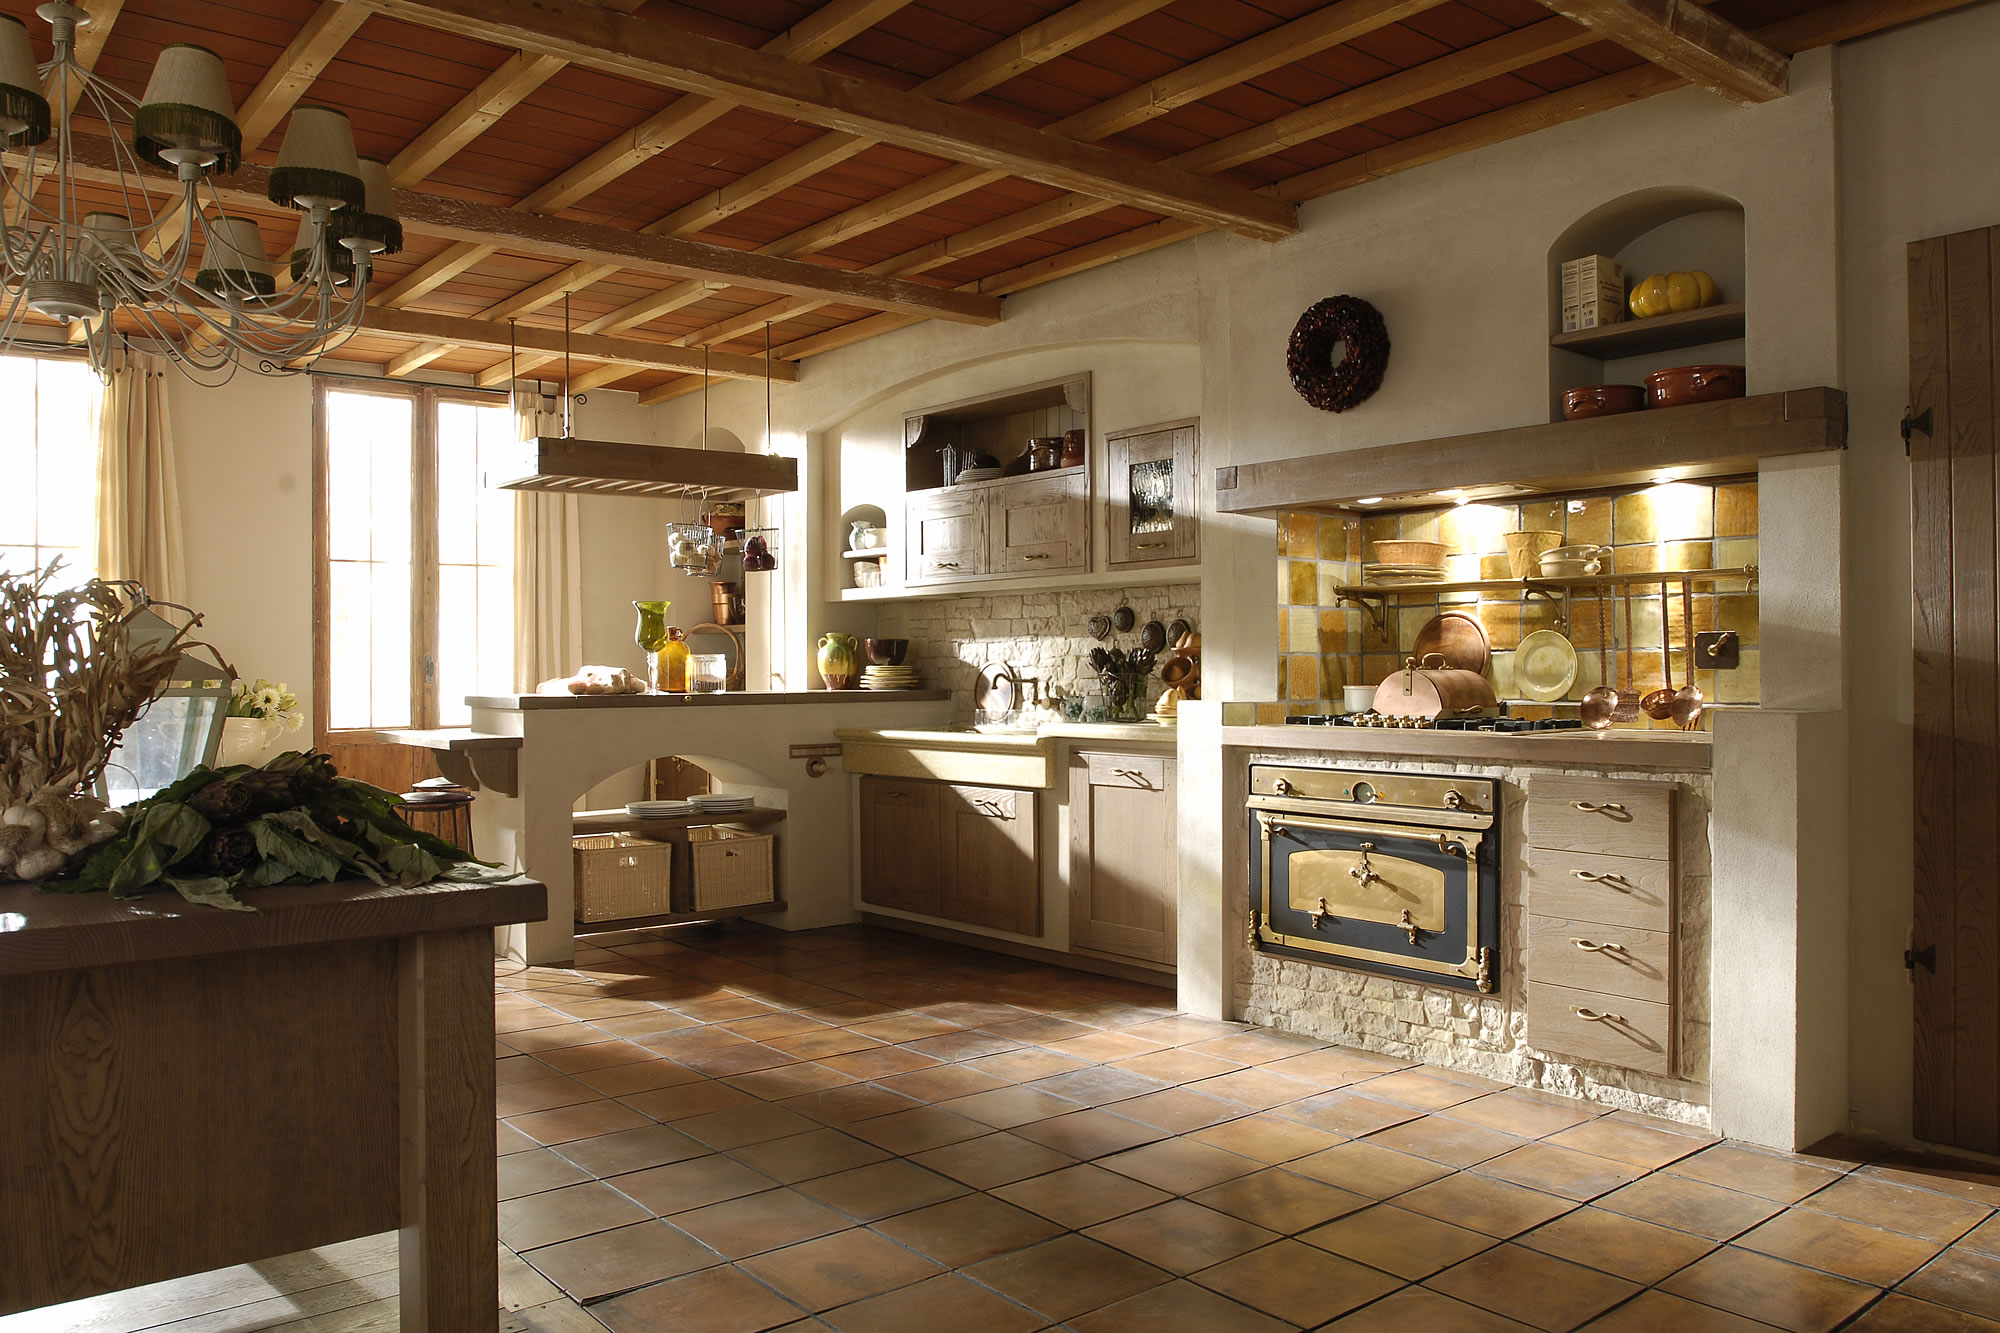 Italian country chic kitchens modular elegant kitchens solid wood rustic kitchens AURORA